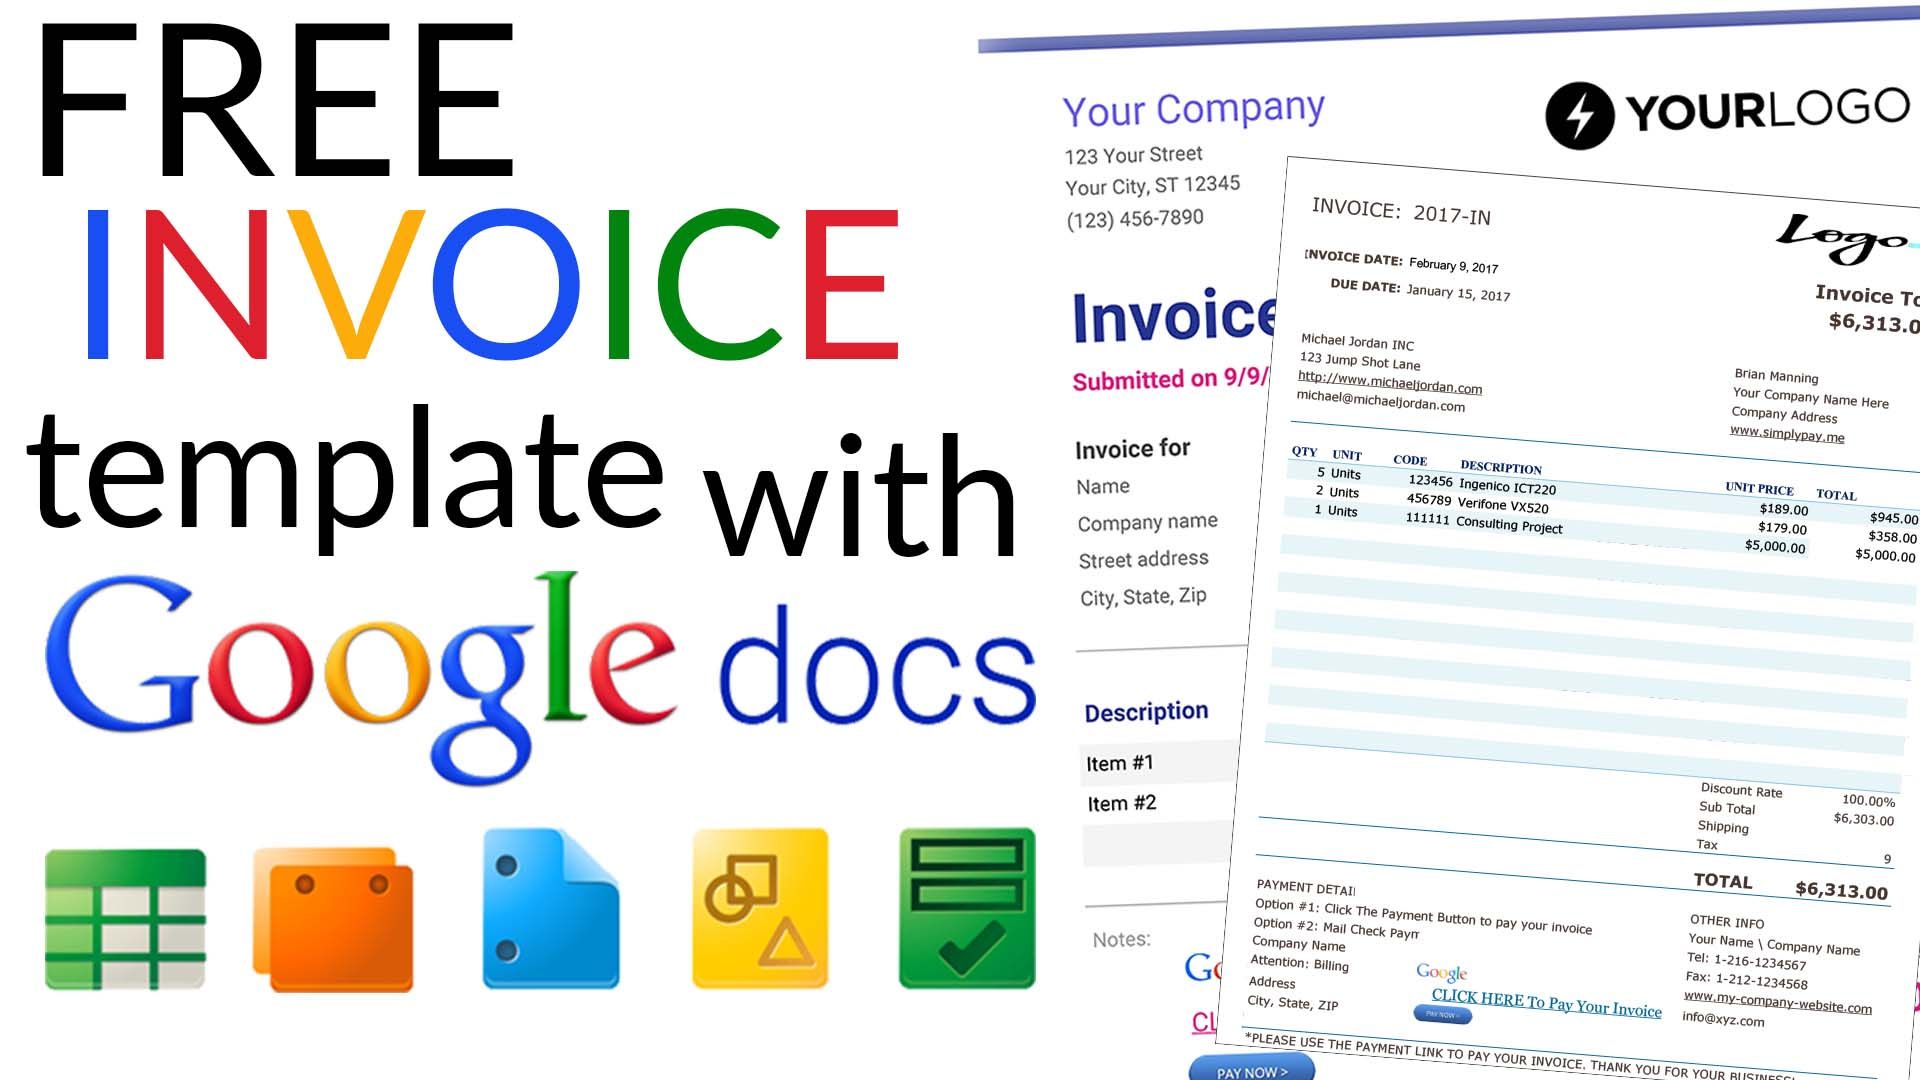 free invoice templates with google docs. Black Bedroom Furniture Sets. Home Design Ideas